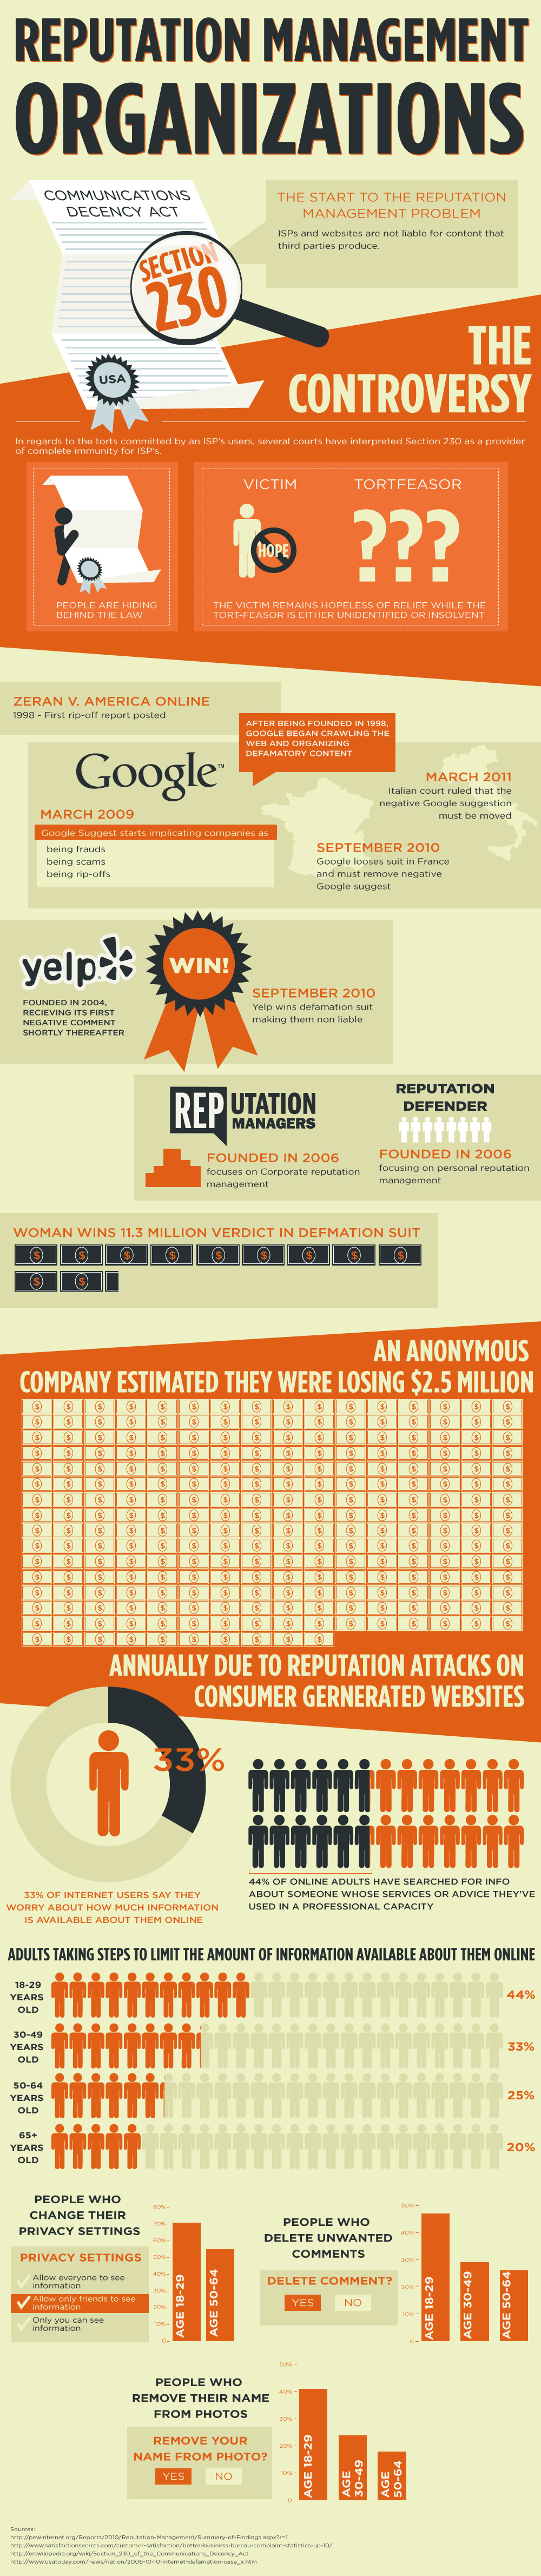 We Designed The Infographic Below To Outline The Communications Decency Act Which Section Reputation Management Online Reputation Management Online Reputation